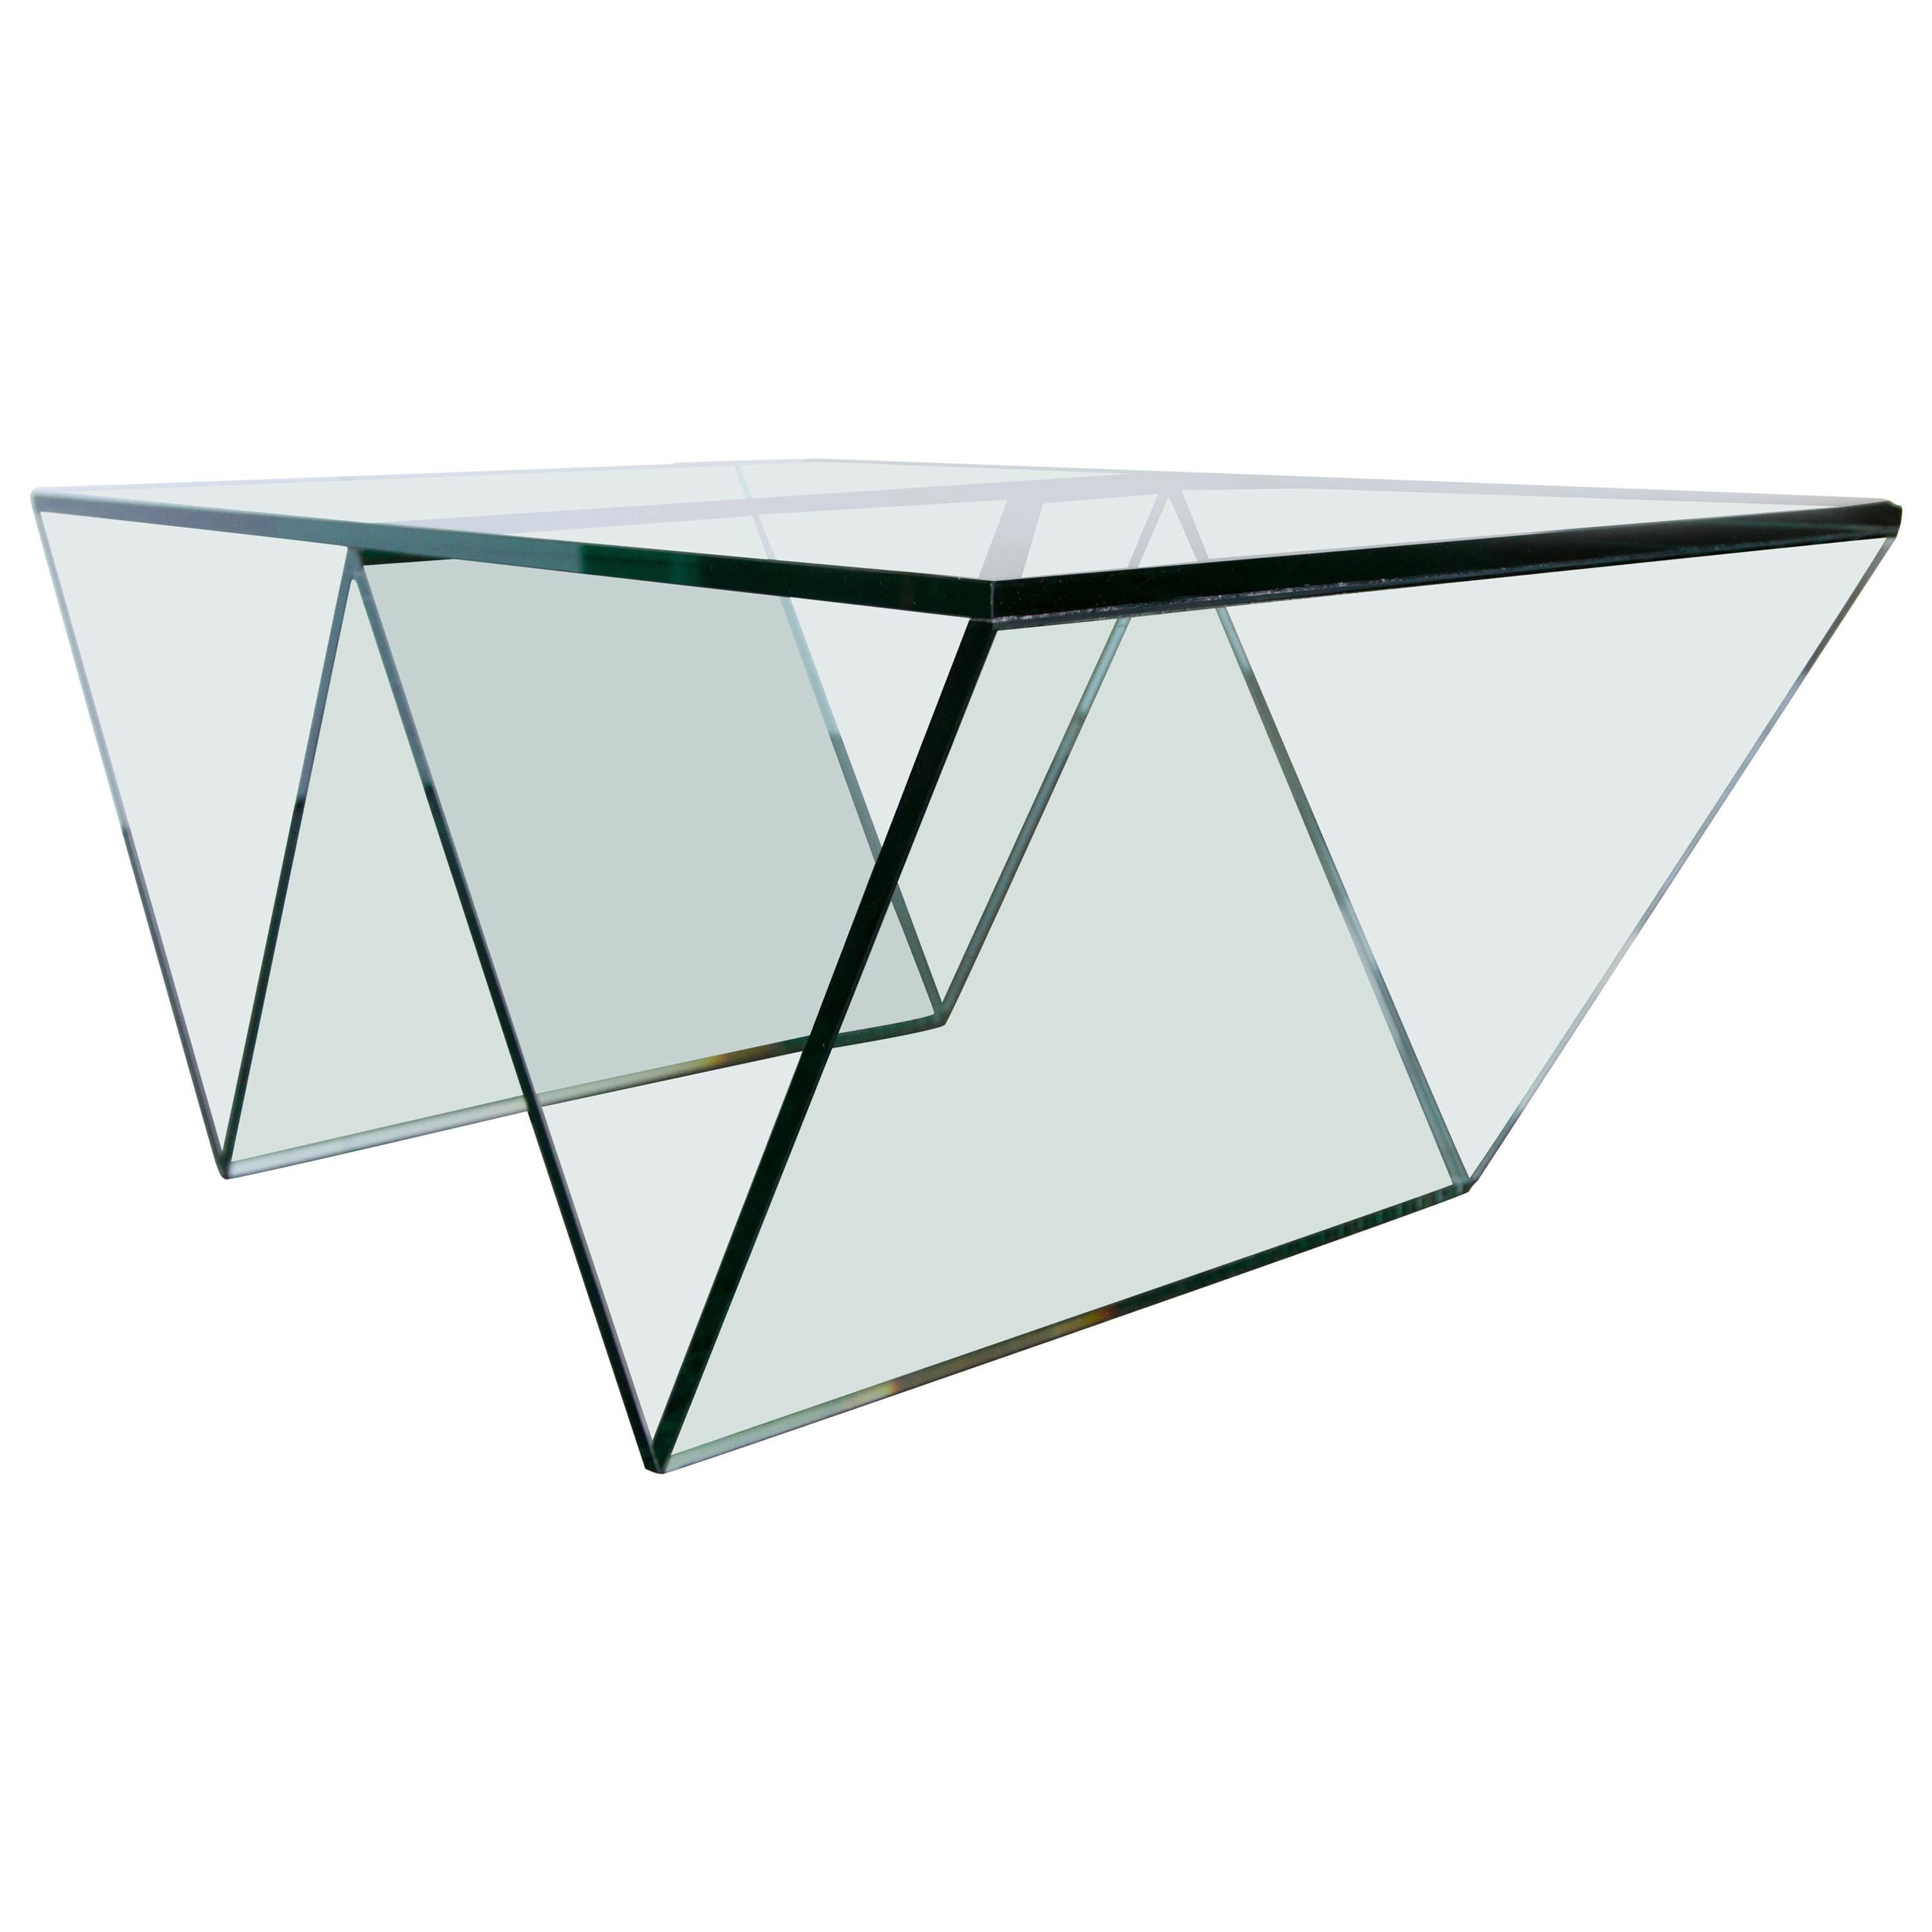 Del Mar Coffee Table in Clear Glass by Mtharu